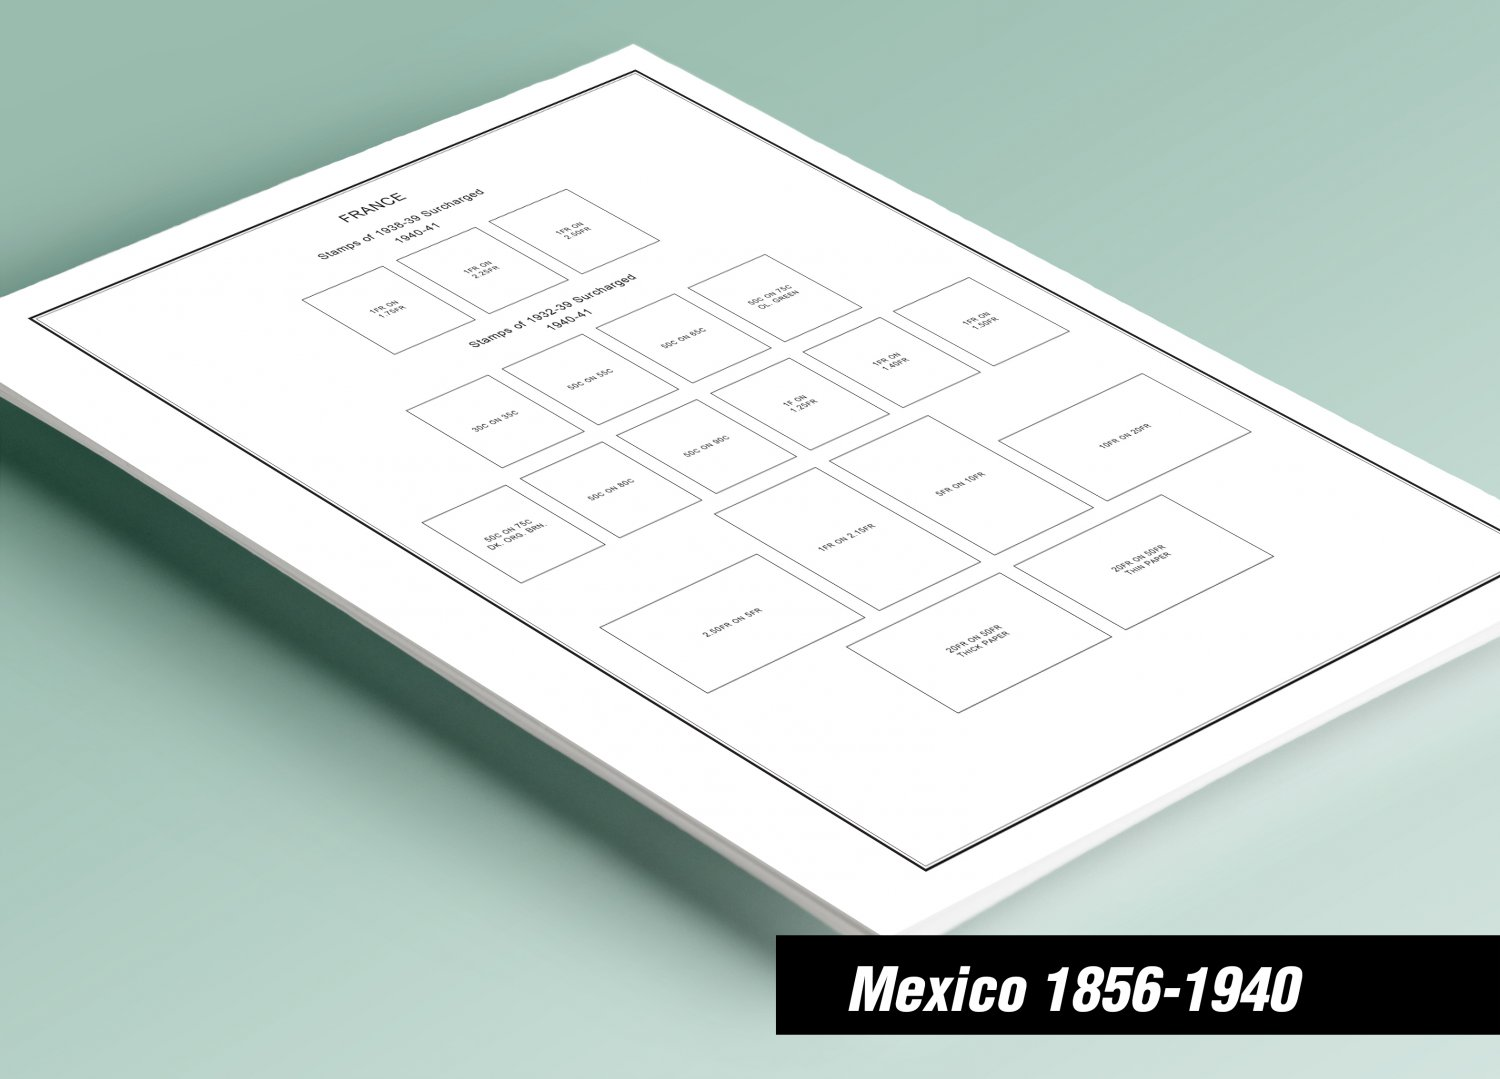 PRINTED MEXICO [CLASS.] 1856-1940 STAMP ALBUM PAGES (104 pages)